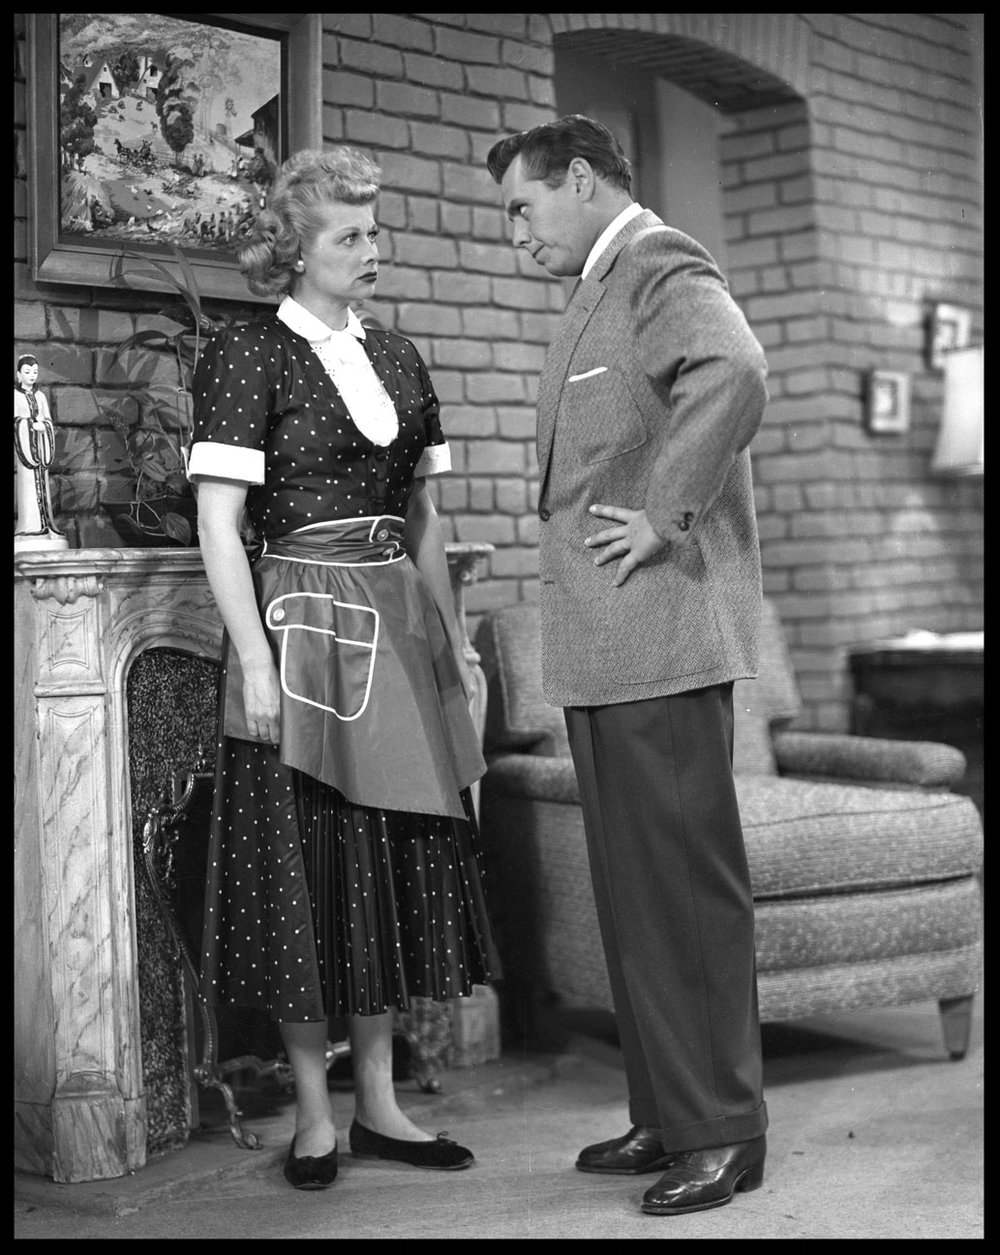 Lucille Ball & Desi Arnaz, At It Again, from The I Love Lucy Show c.1956 from original 4x5 negative